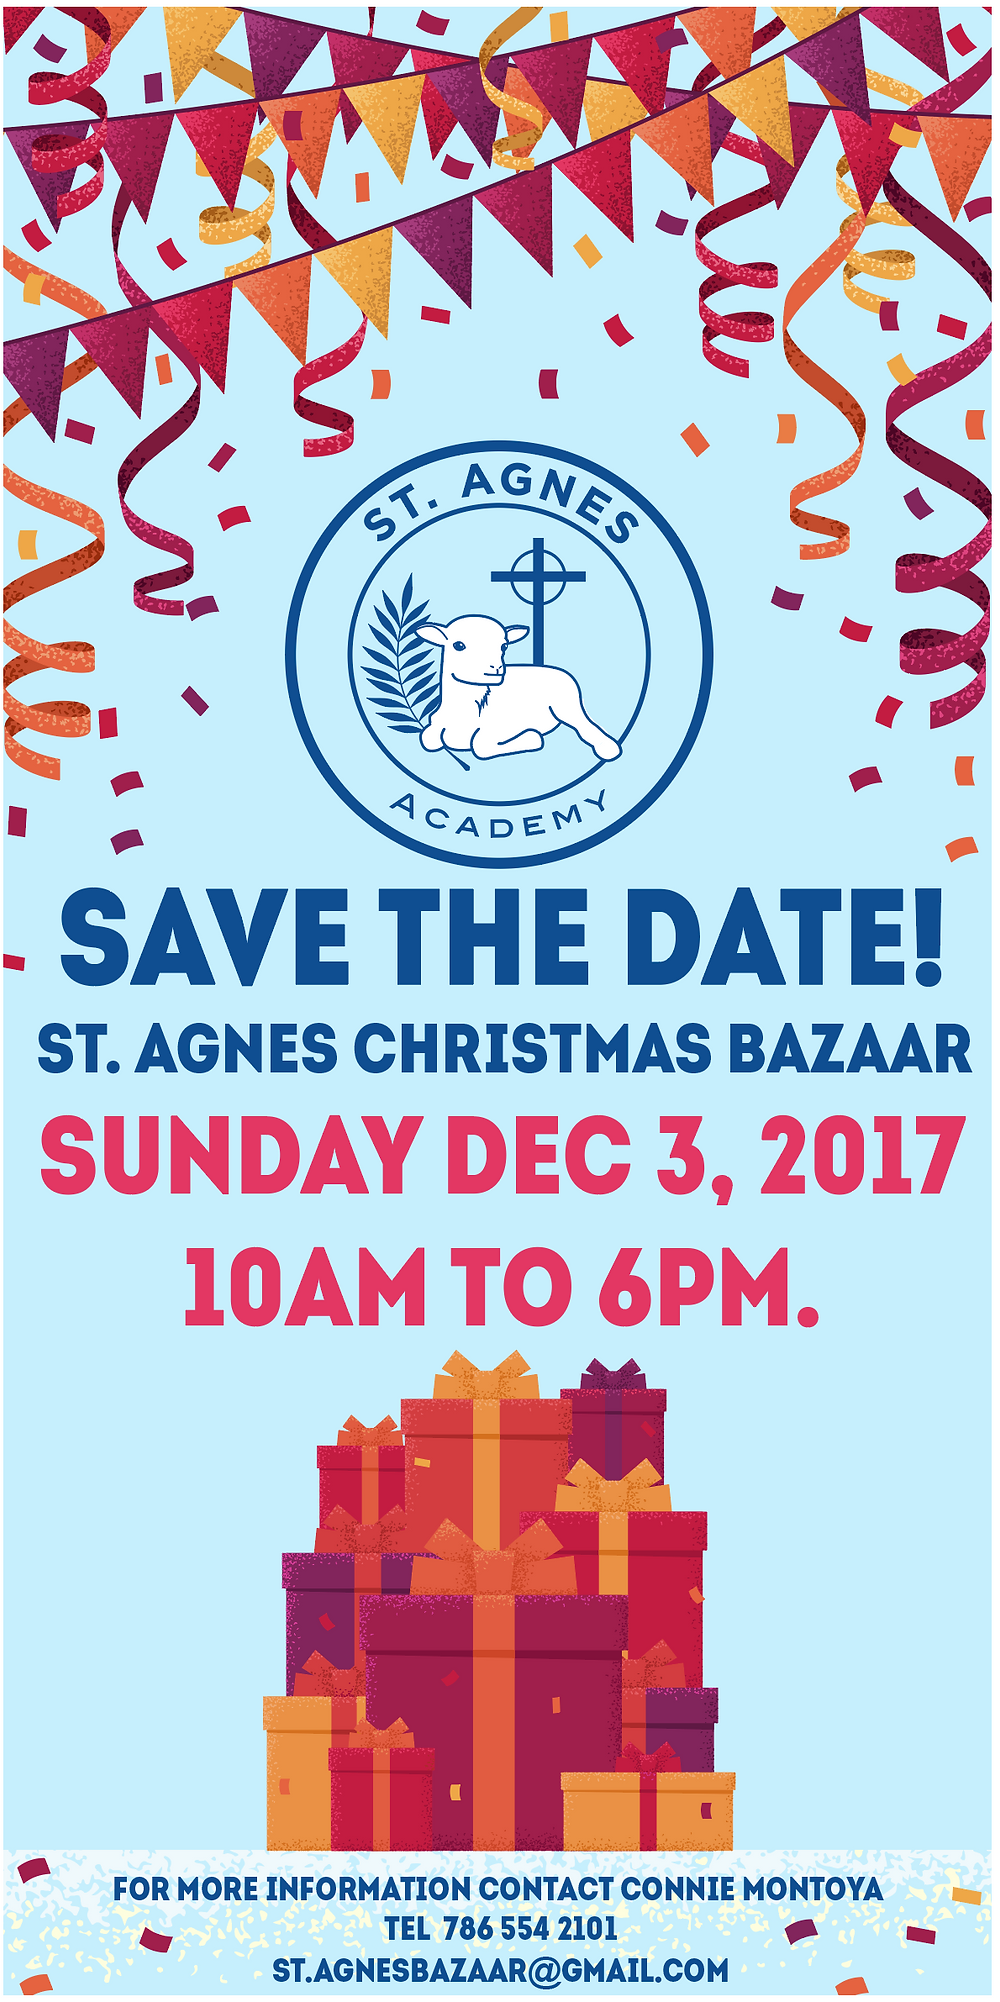 St. Agnes Christmas Bazaar happening this weekend in #KeyBiscayne. Don't miss it!!!